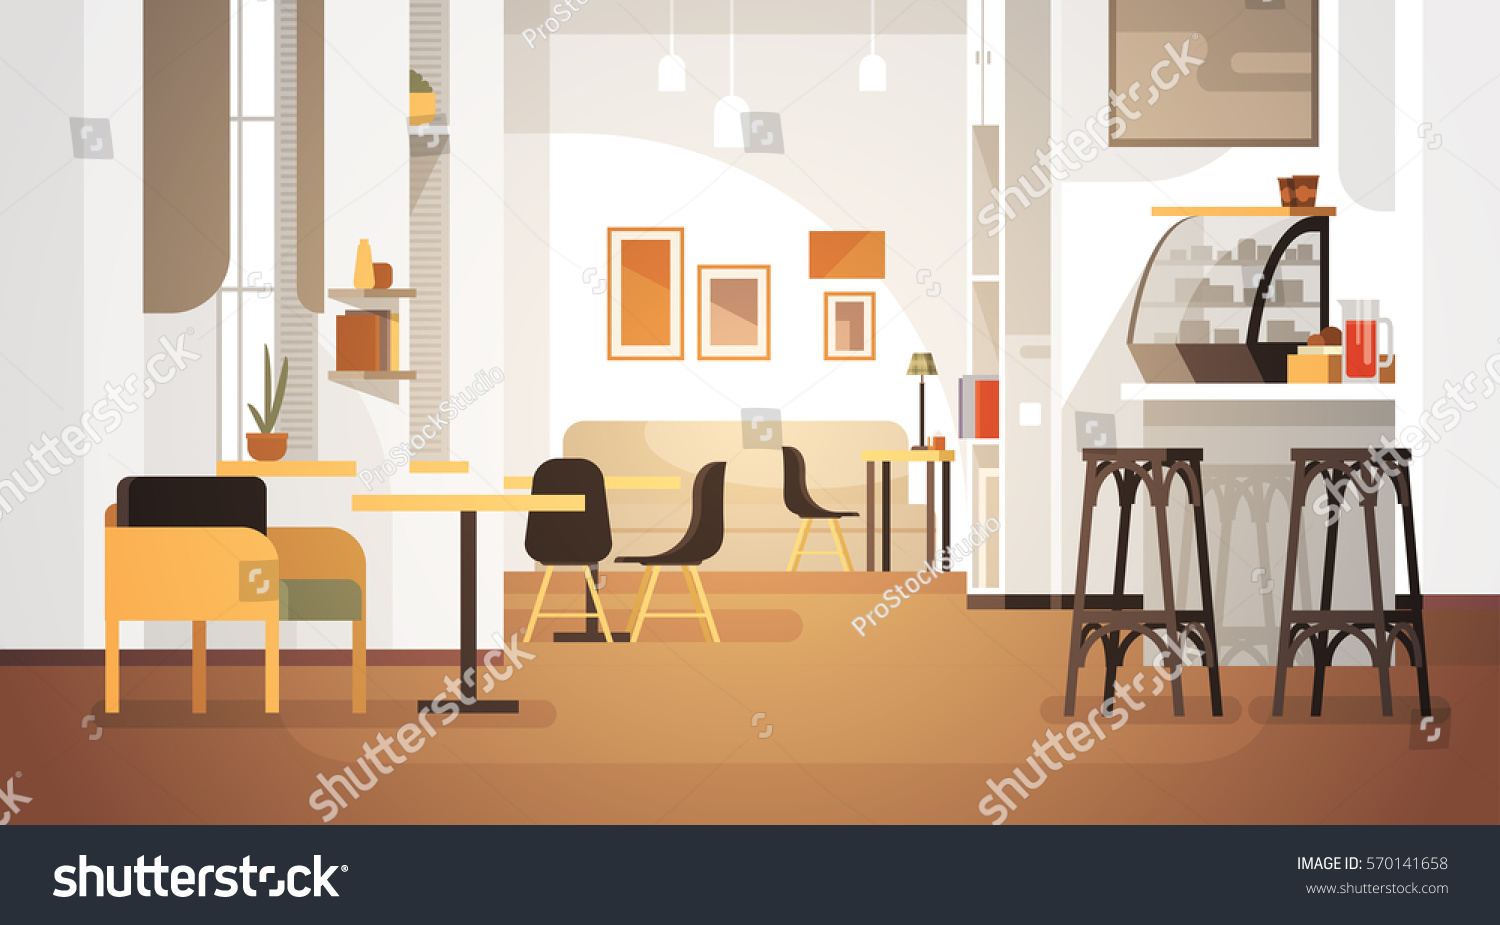 Modern cafe interior empty no people stock vector